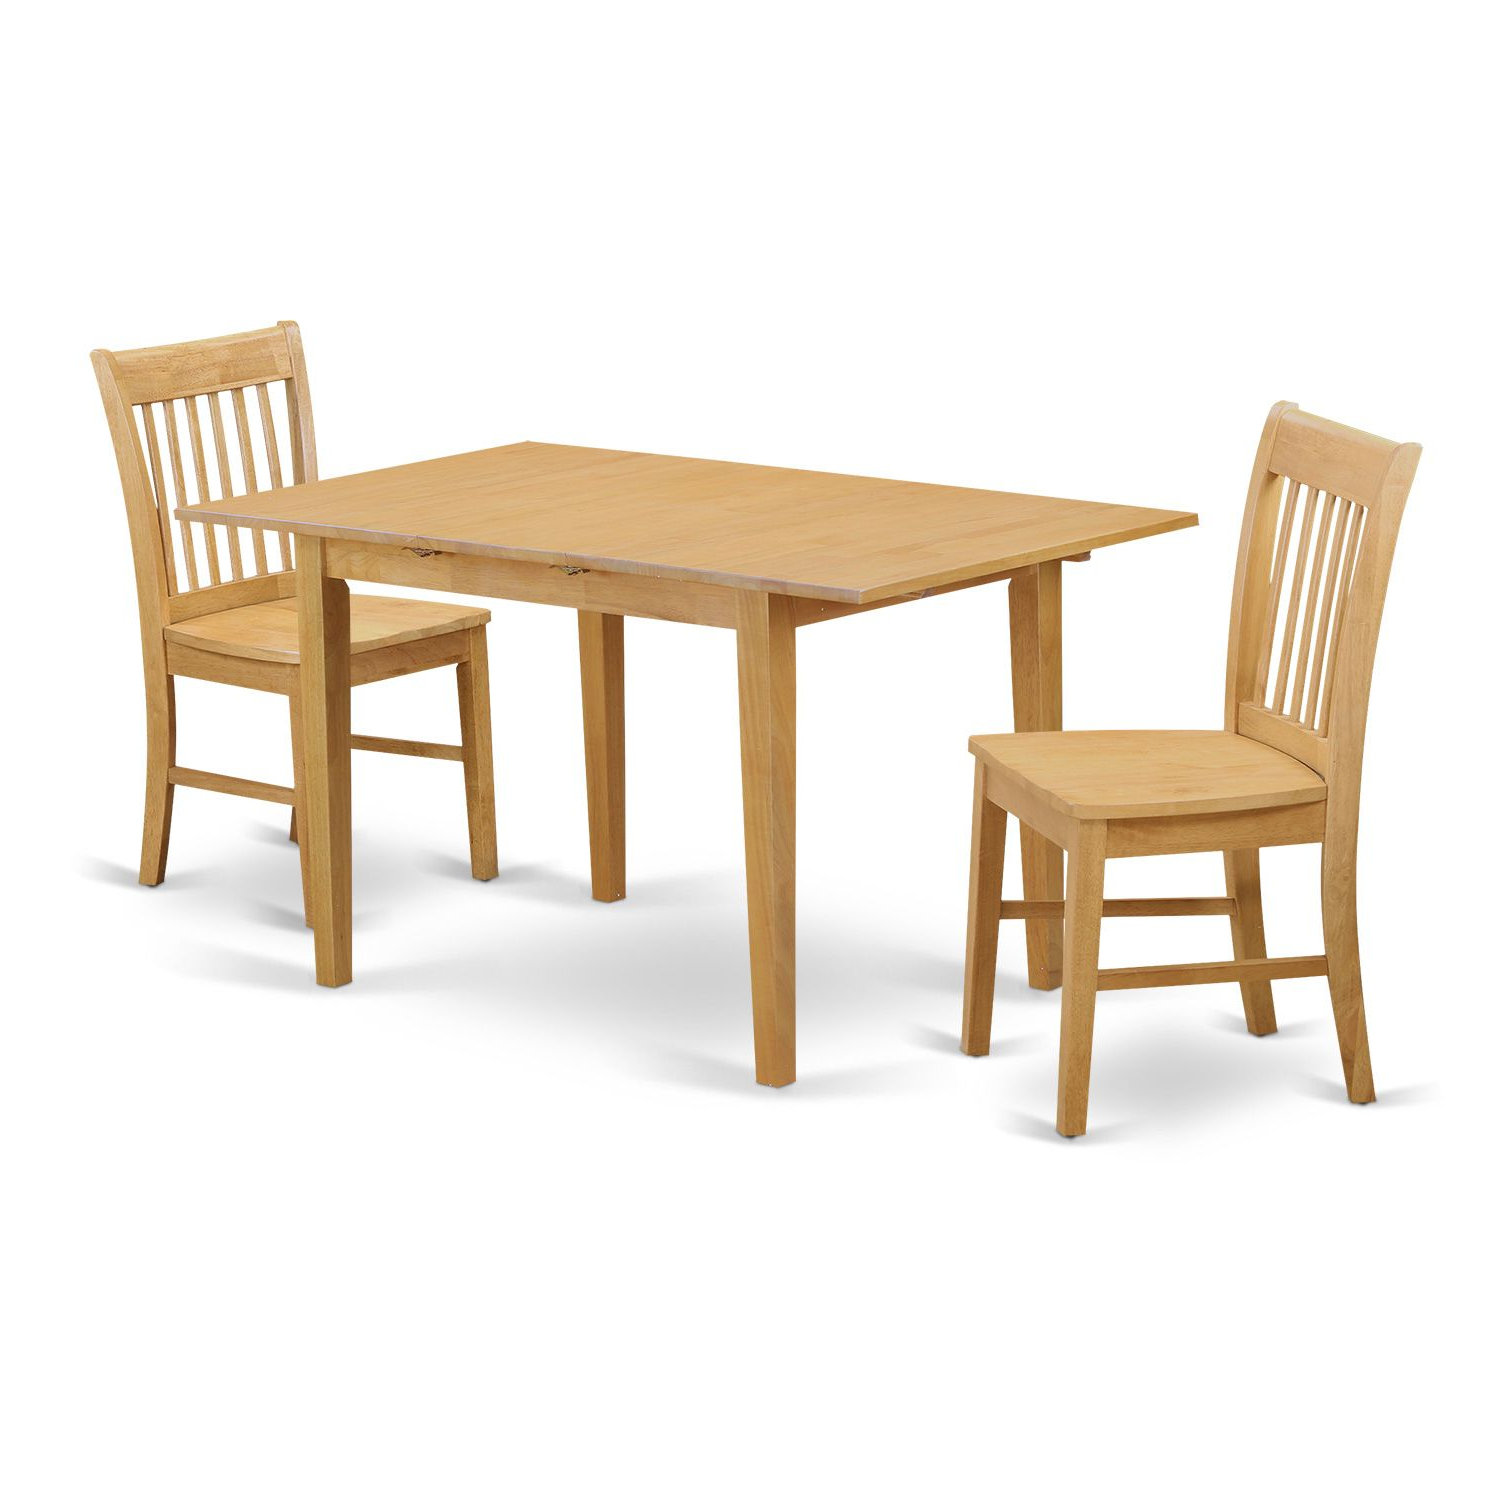 Dining Table Sets Phoenixville 3 Piece Extendable Dining Set March 2019 inside Most Recently Released Chelmsford 3 Piece Dining Sets